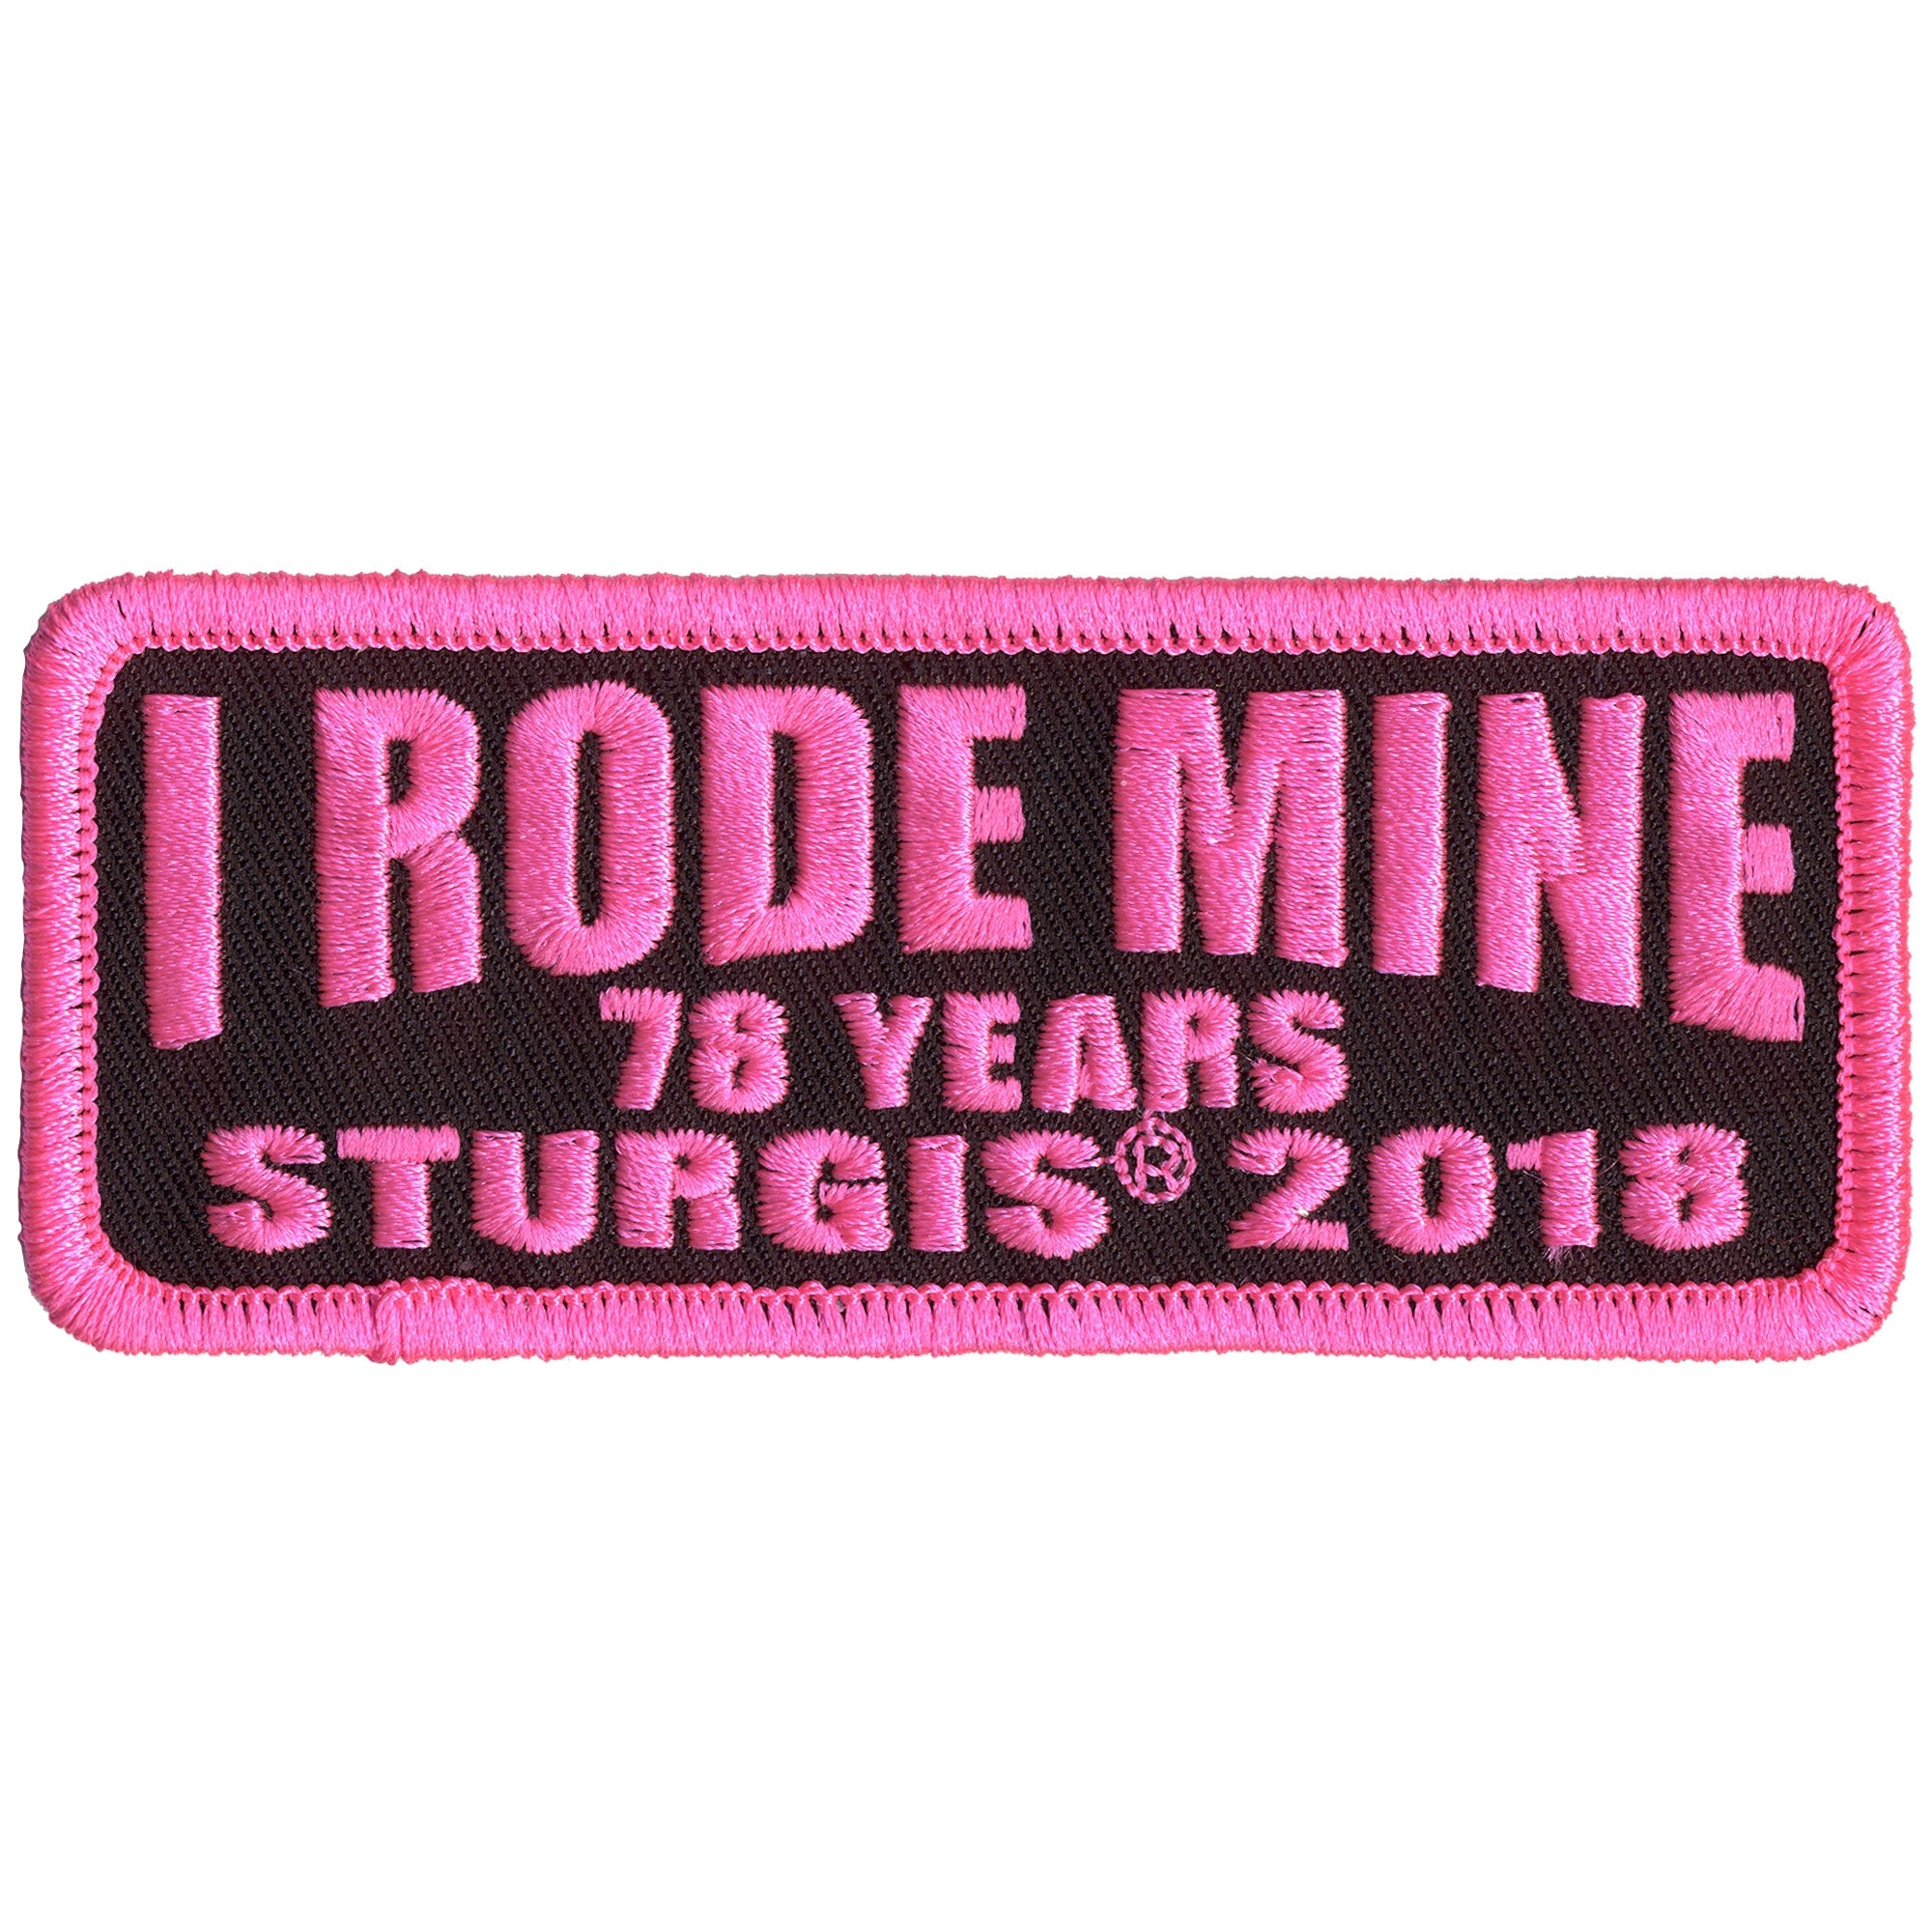 Official 2018 Sturgis Motorcycle Rally I Rode Mine Pink Patch